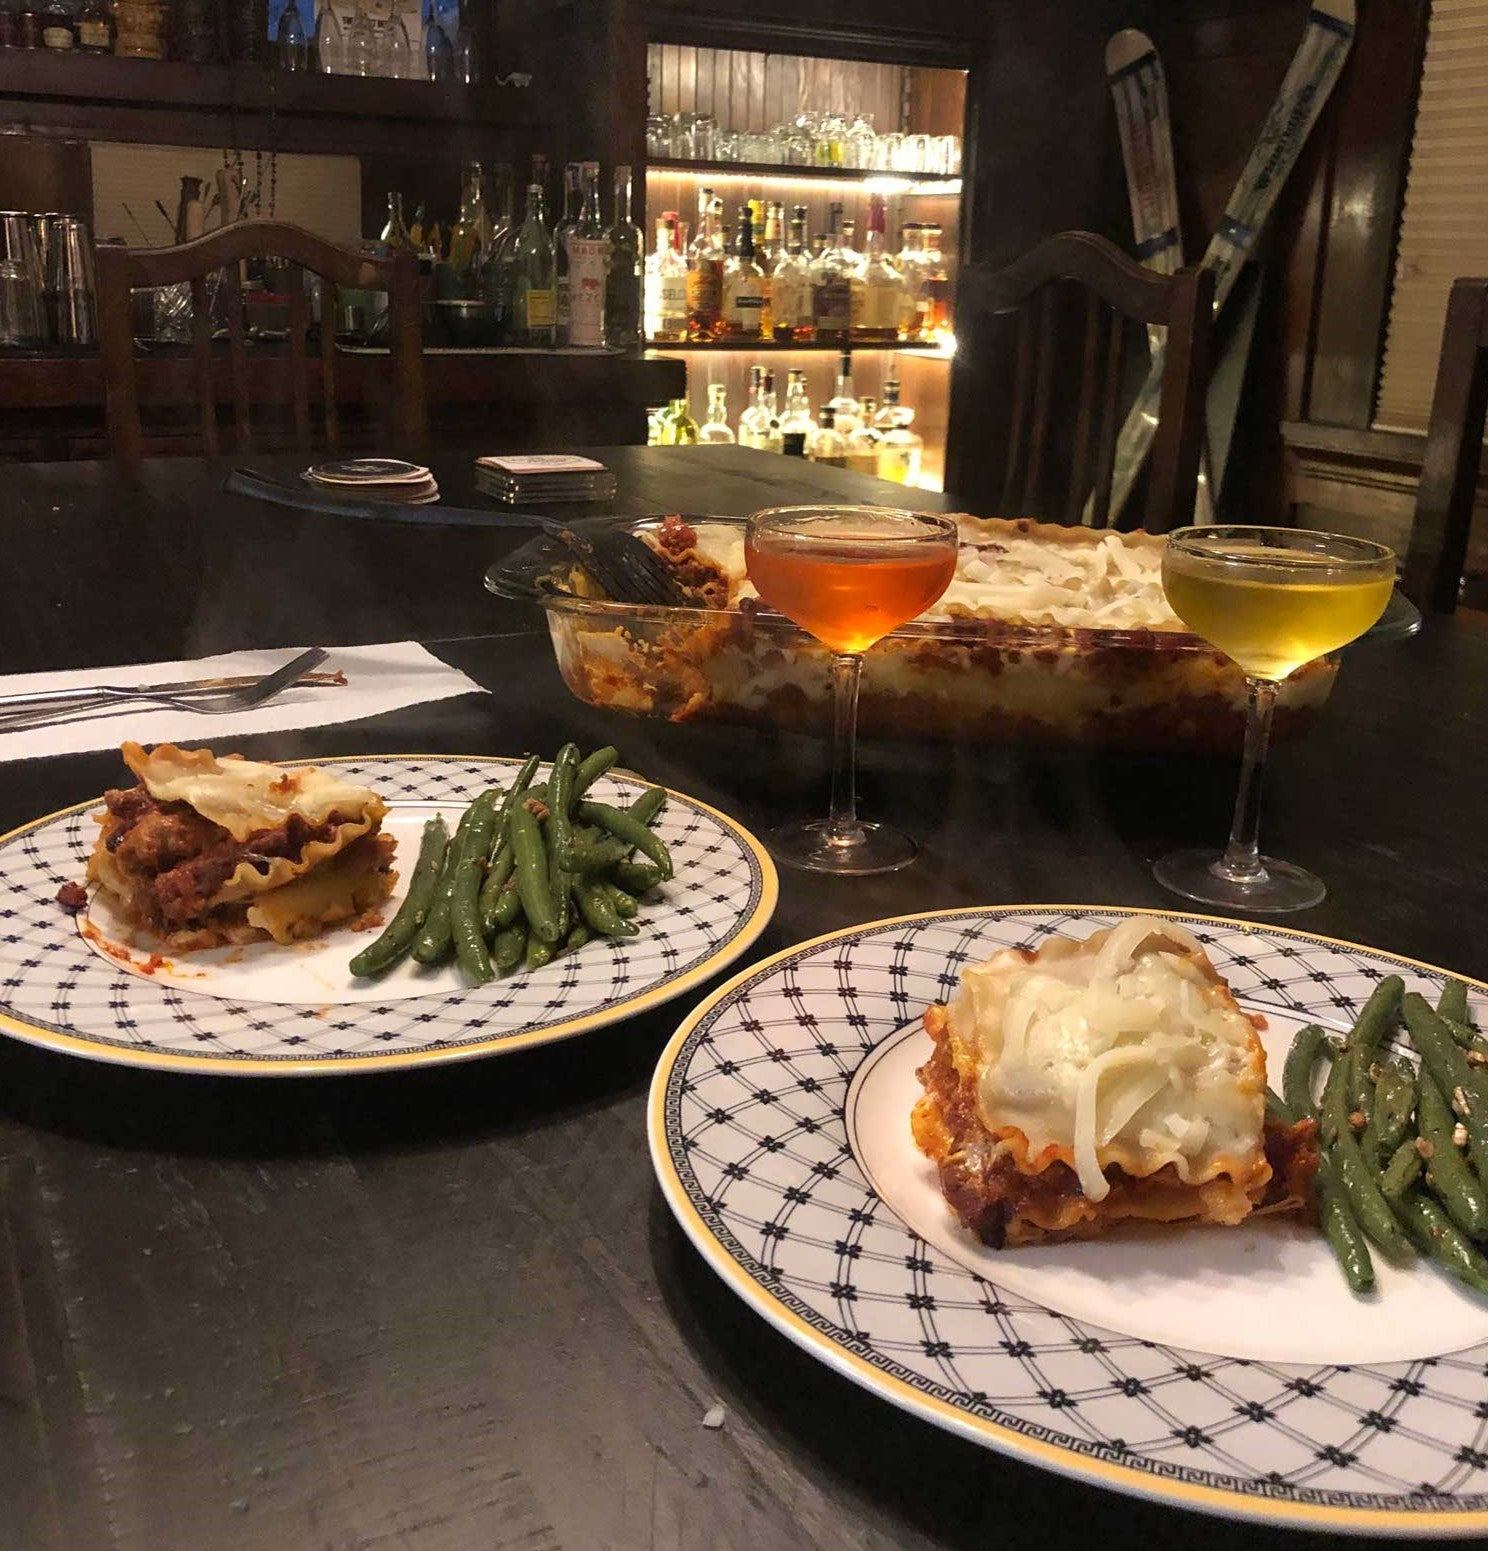 Plate of lasagna and green beans, in front of coupe glasses